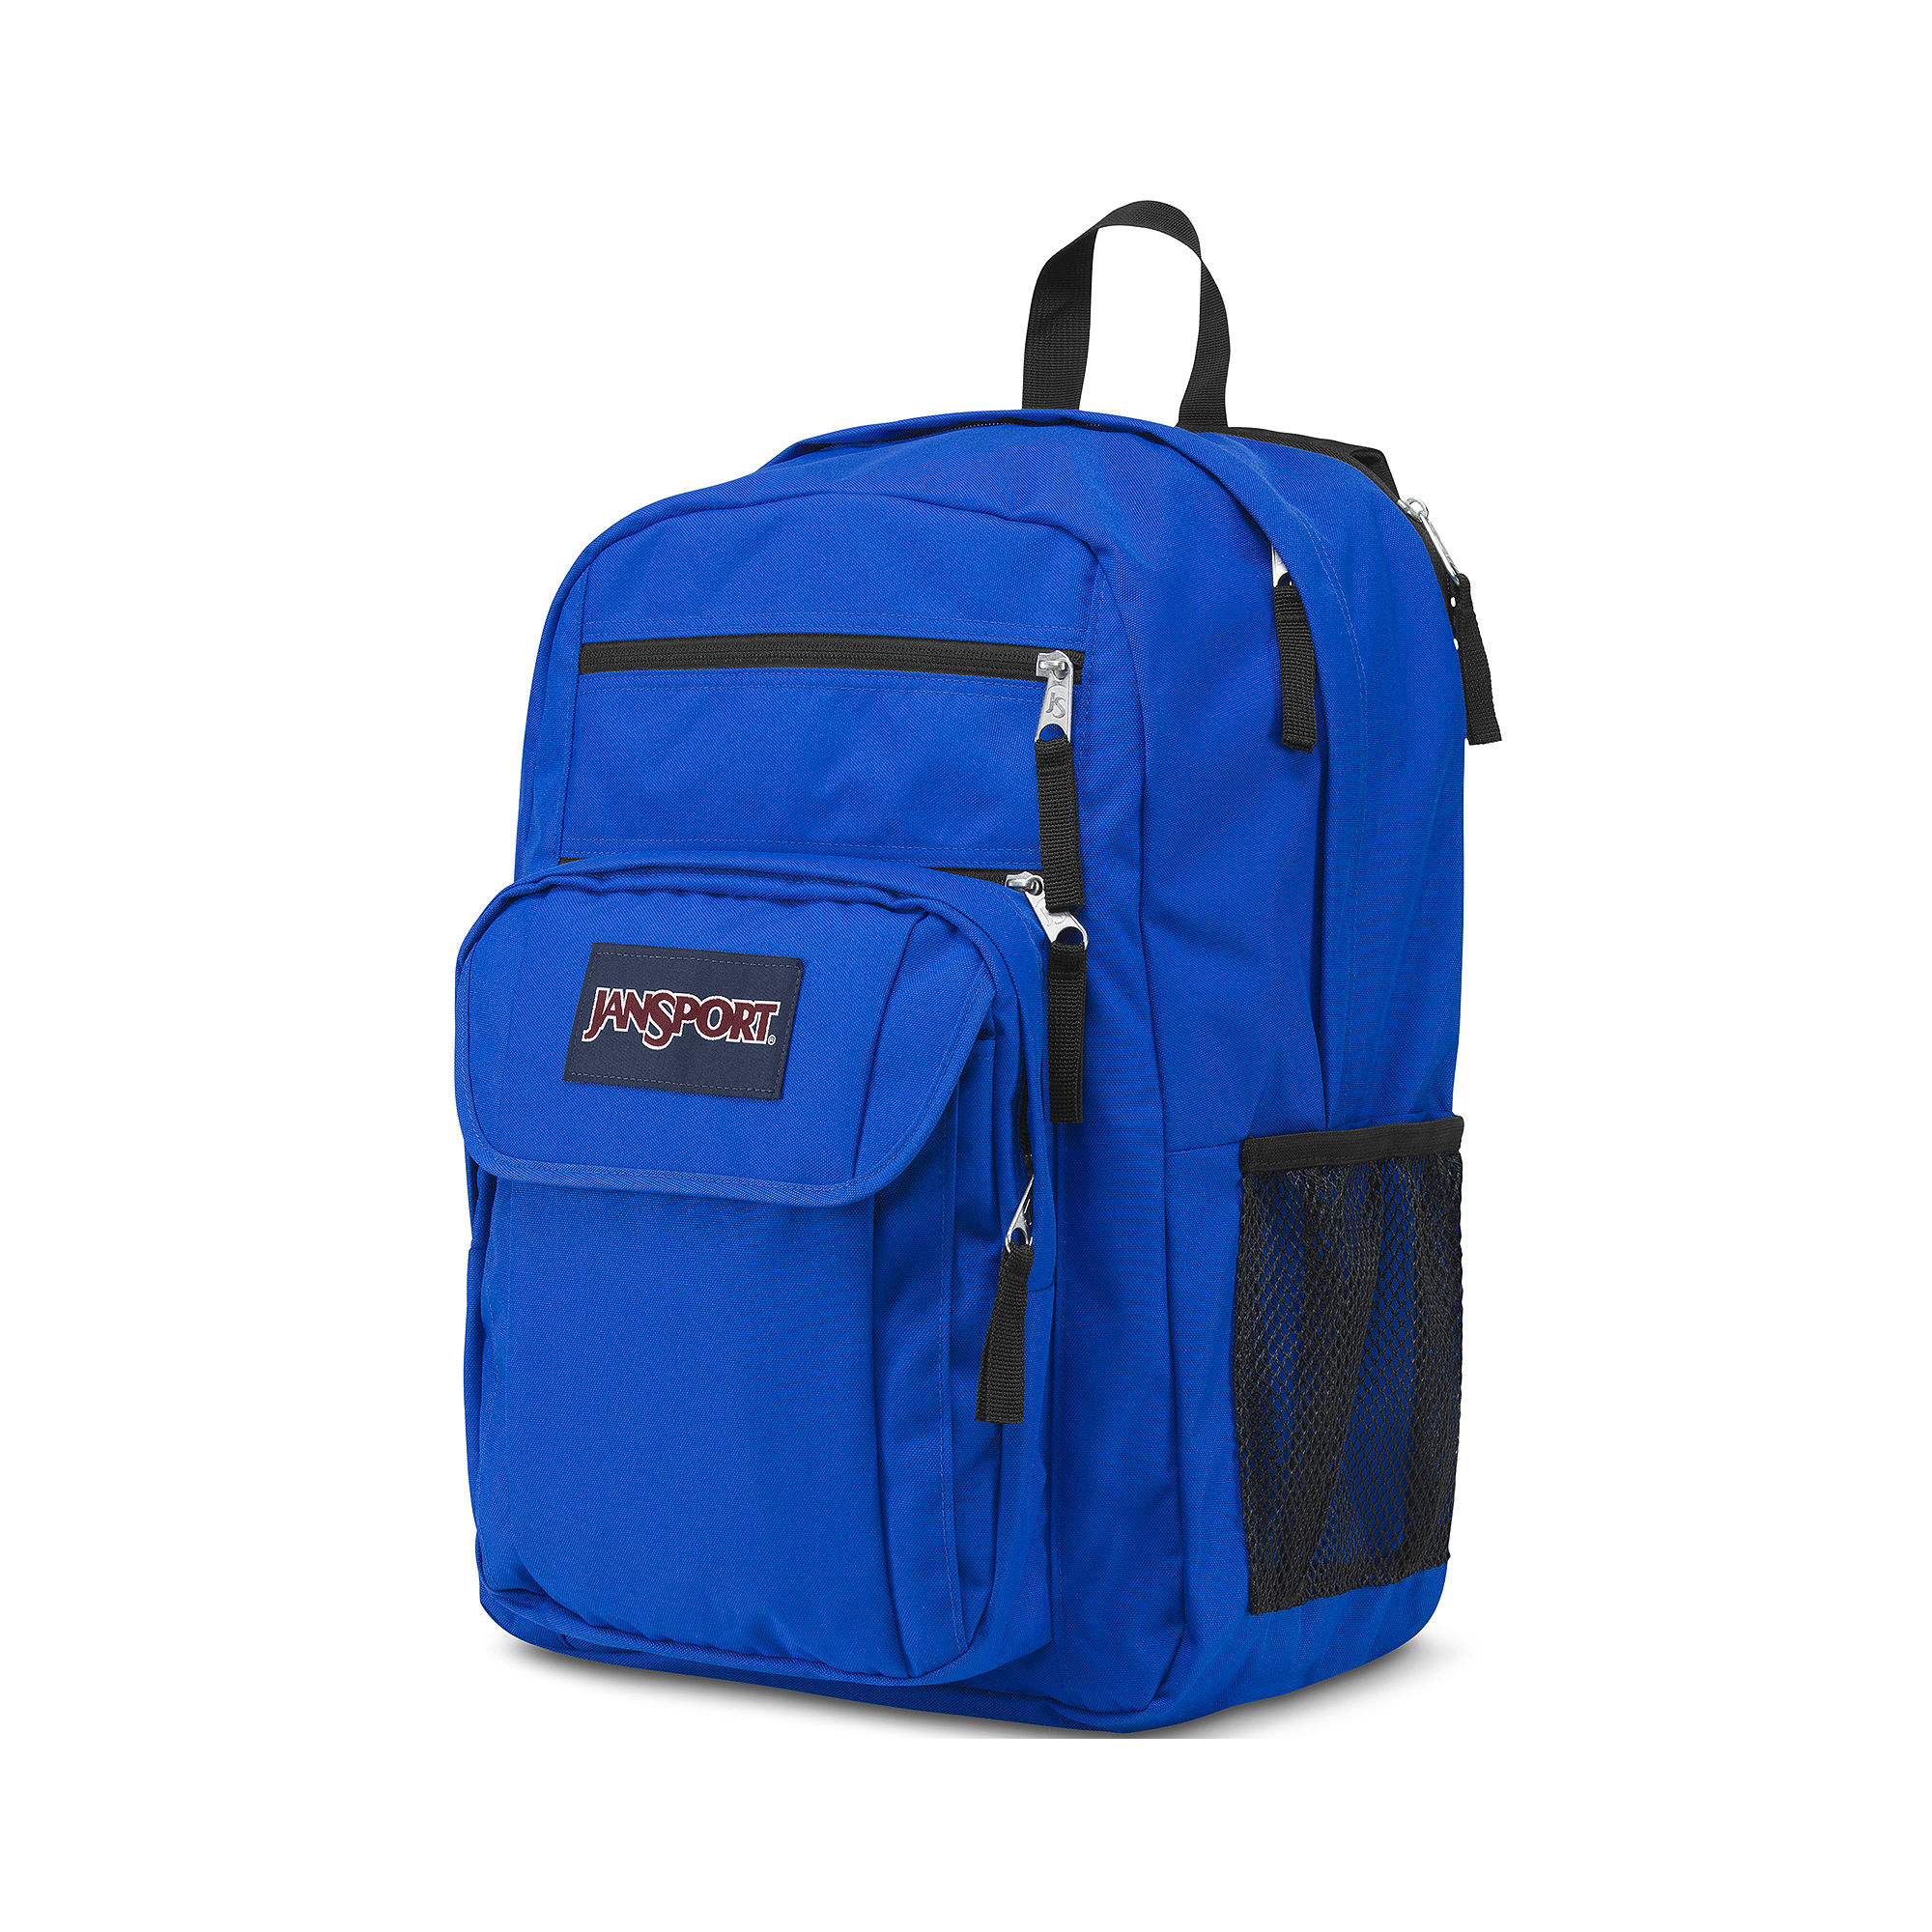 Biggest Jansport Backpack TYRpWQ6A